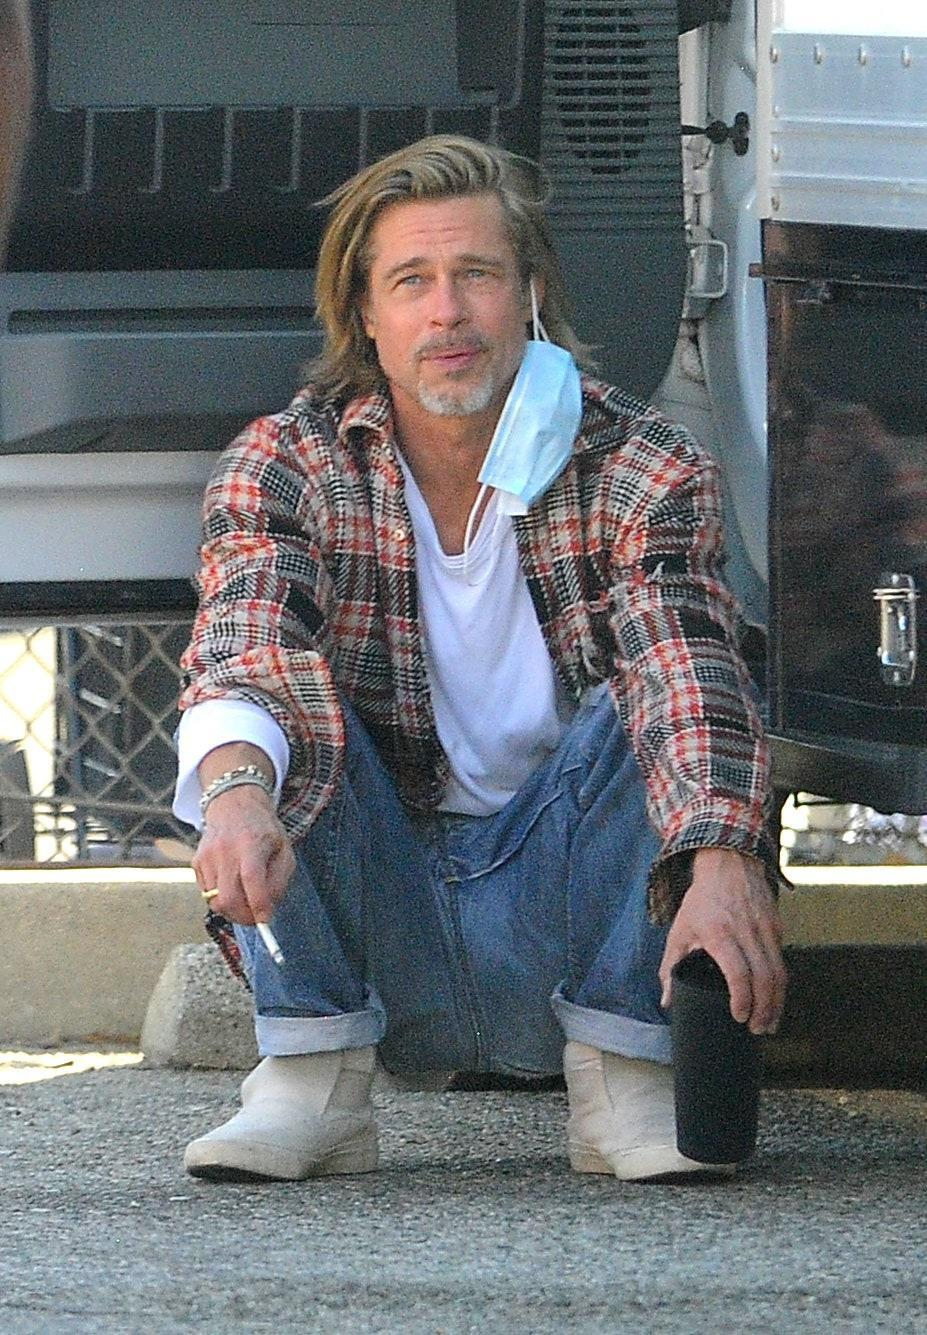 Brad Pitt delivering food to low-income families in Los Angeles.